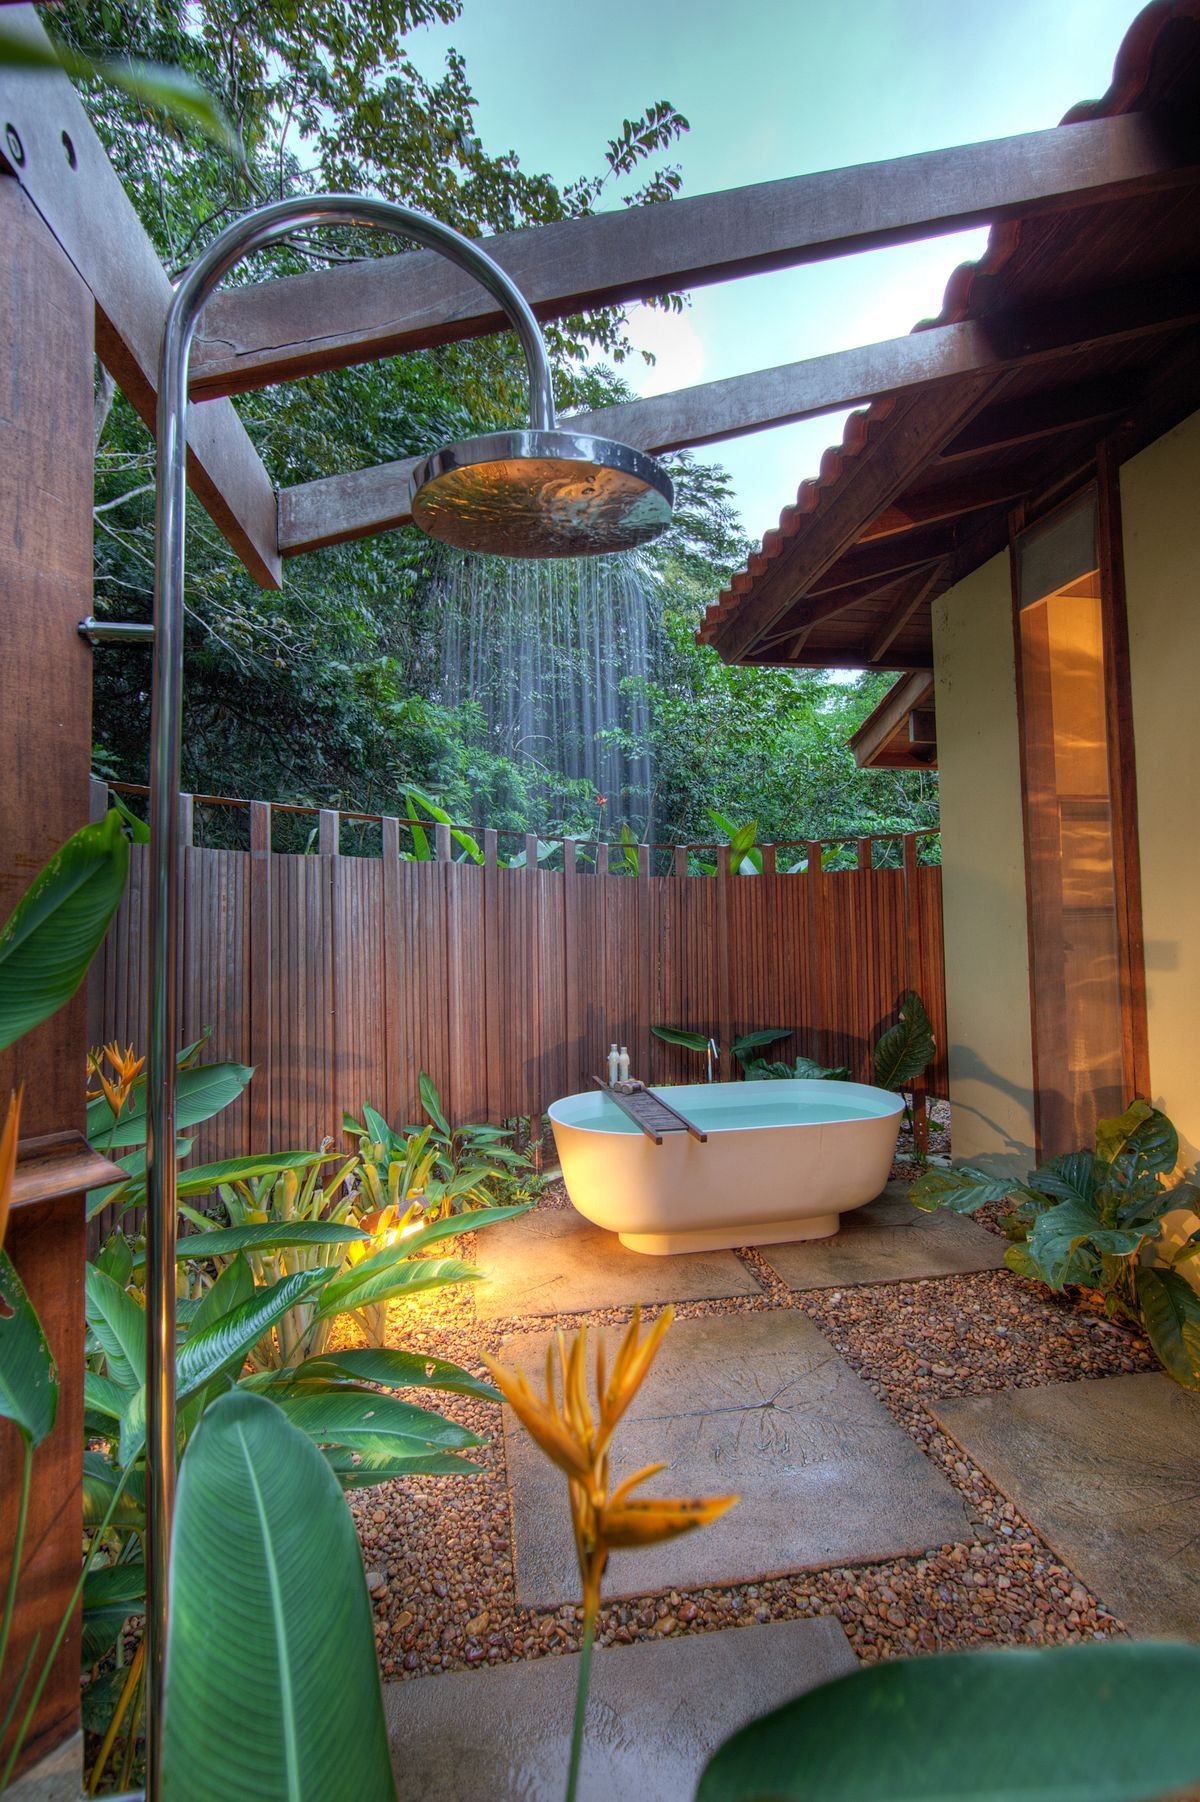 Outdoor bathroom in the middle of the jungle | Bathroom Ideas ...